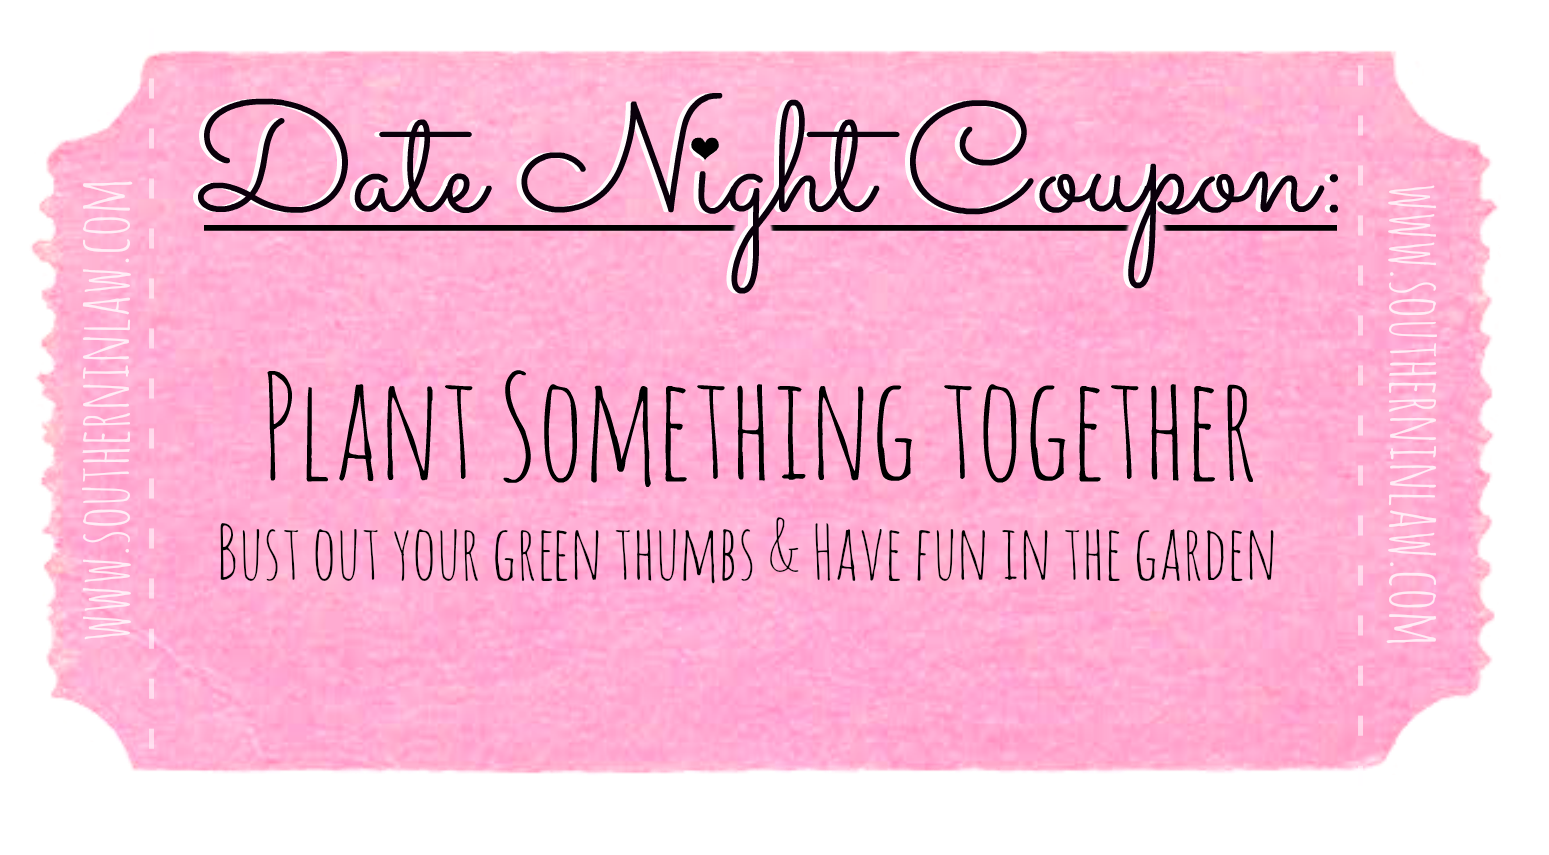 Affordable Date Ideas - Cheap Date Ideas Coupons - Plant Something Together